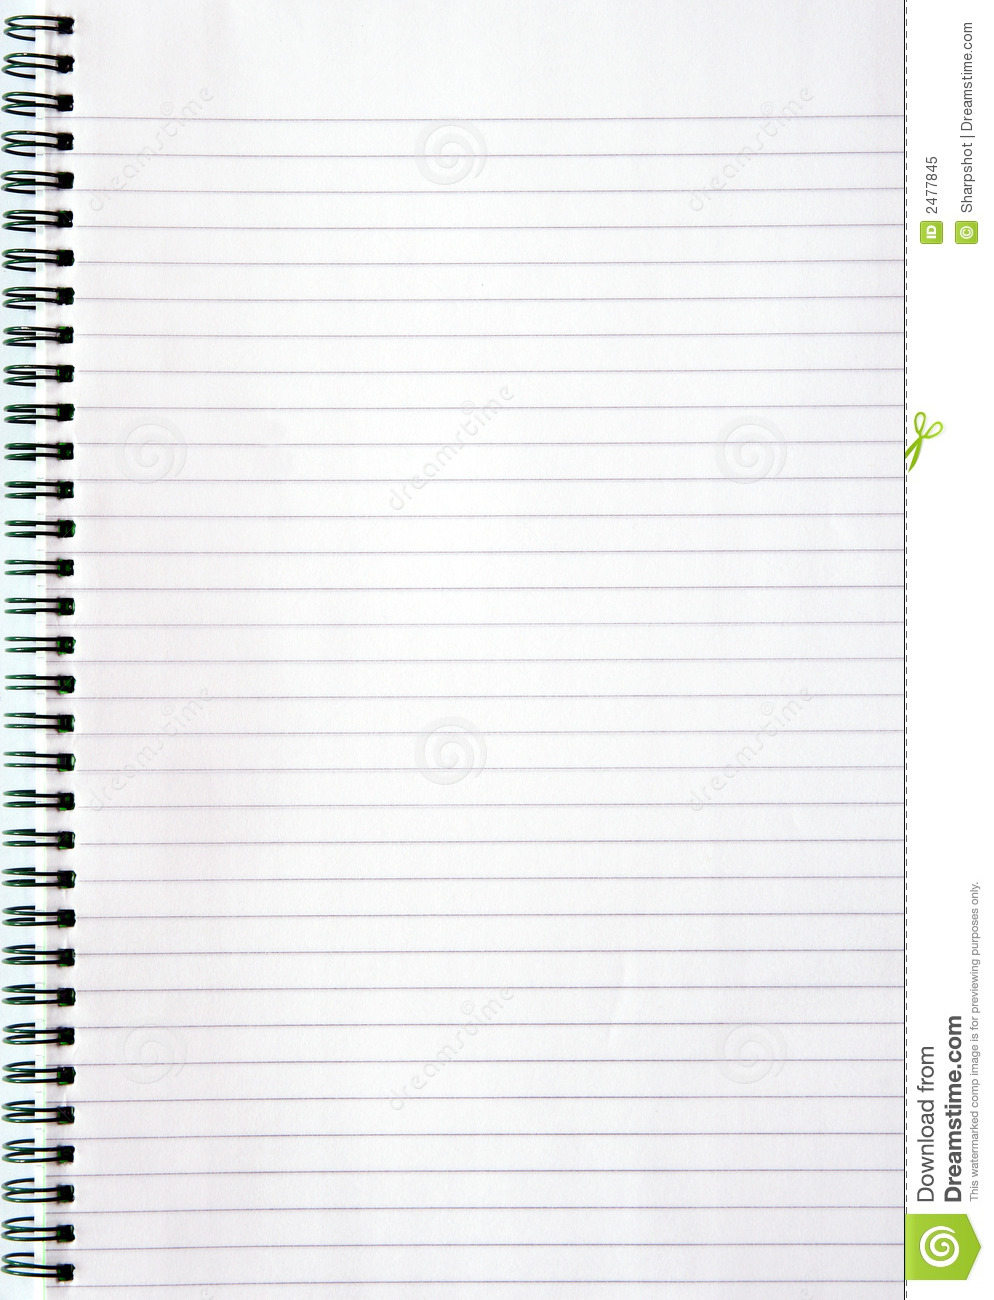 Notebook With Lined Paper Royalty Free Photo Image 2477845 – Paper Lined